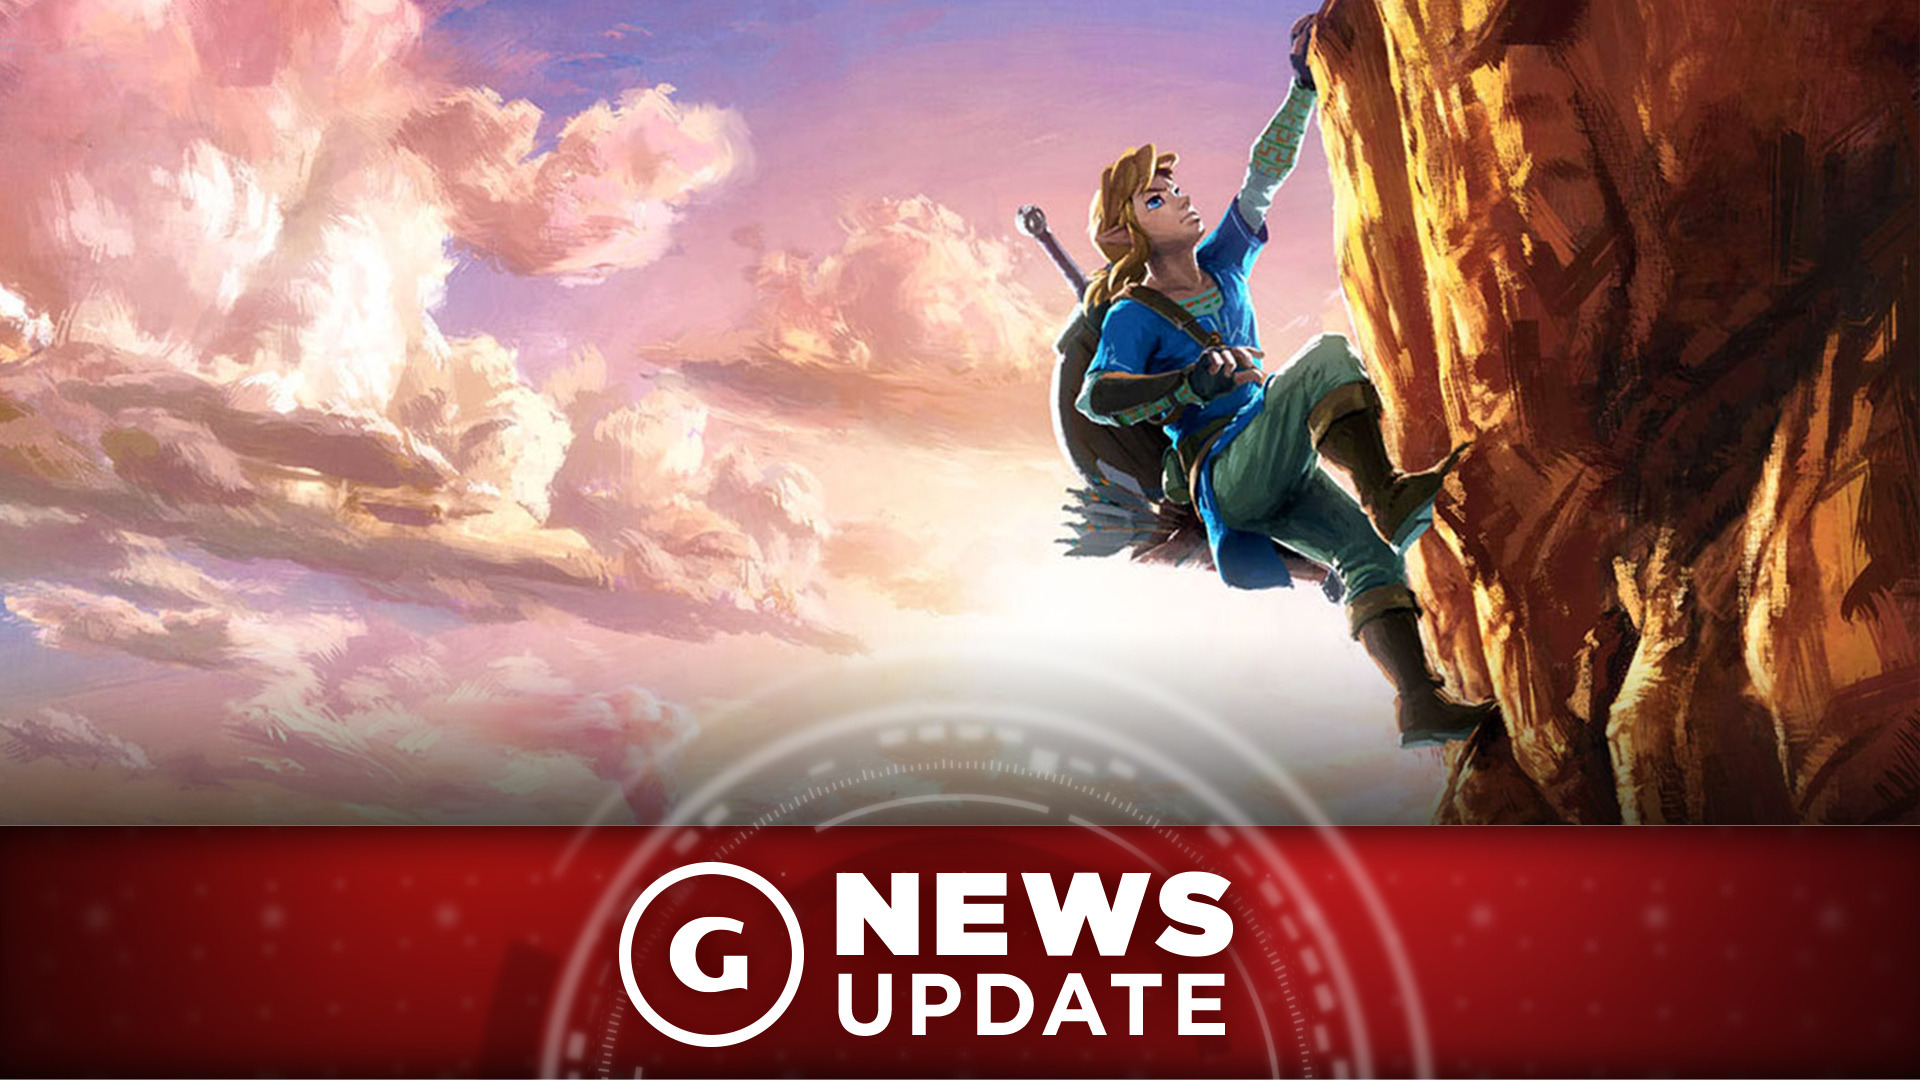 GS News Update: Mario Could Replace Zelda in Nintendo Switch Launch Lineup